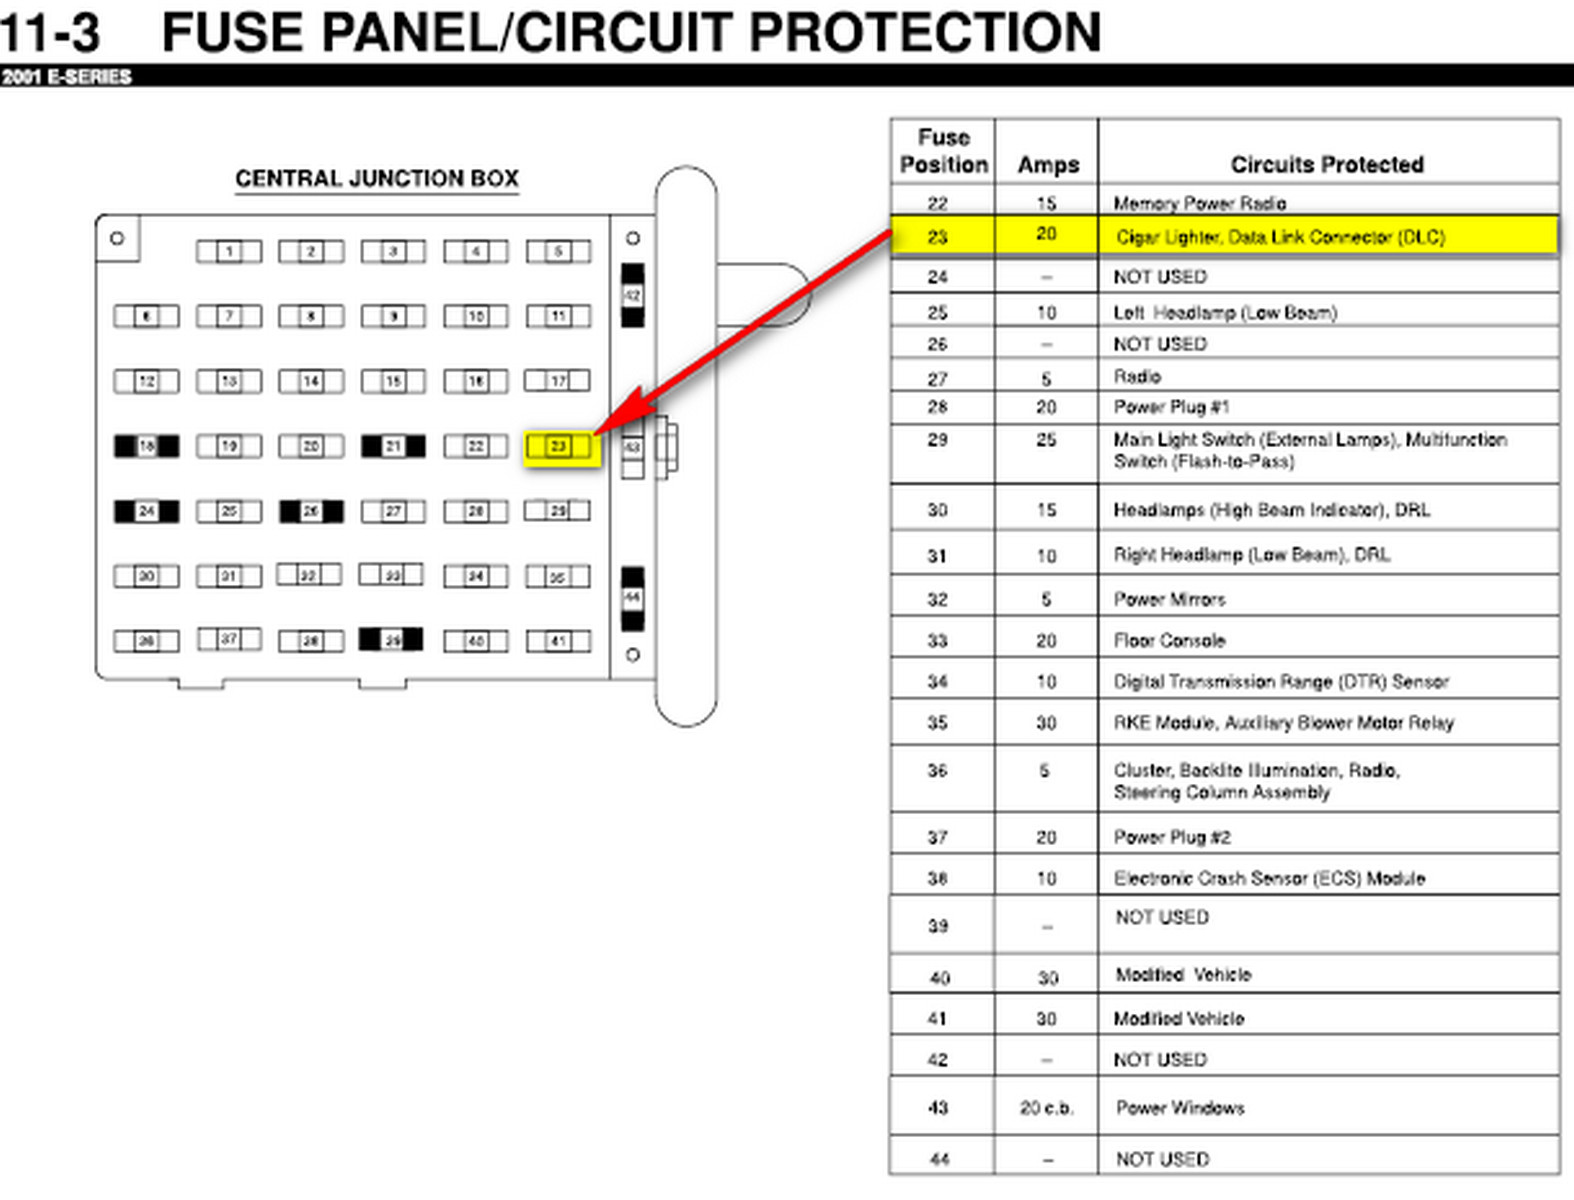 hight resolution of 06 ford e 350 fuse panel diagram simple wiring diagrams 2004 ford f 450 super duty fuse panel diagram 2004 ford econoline fuse panel diagram